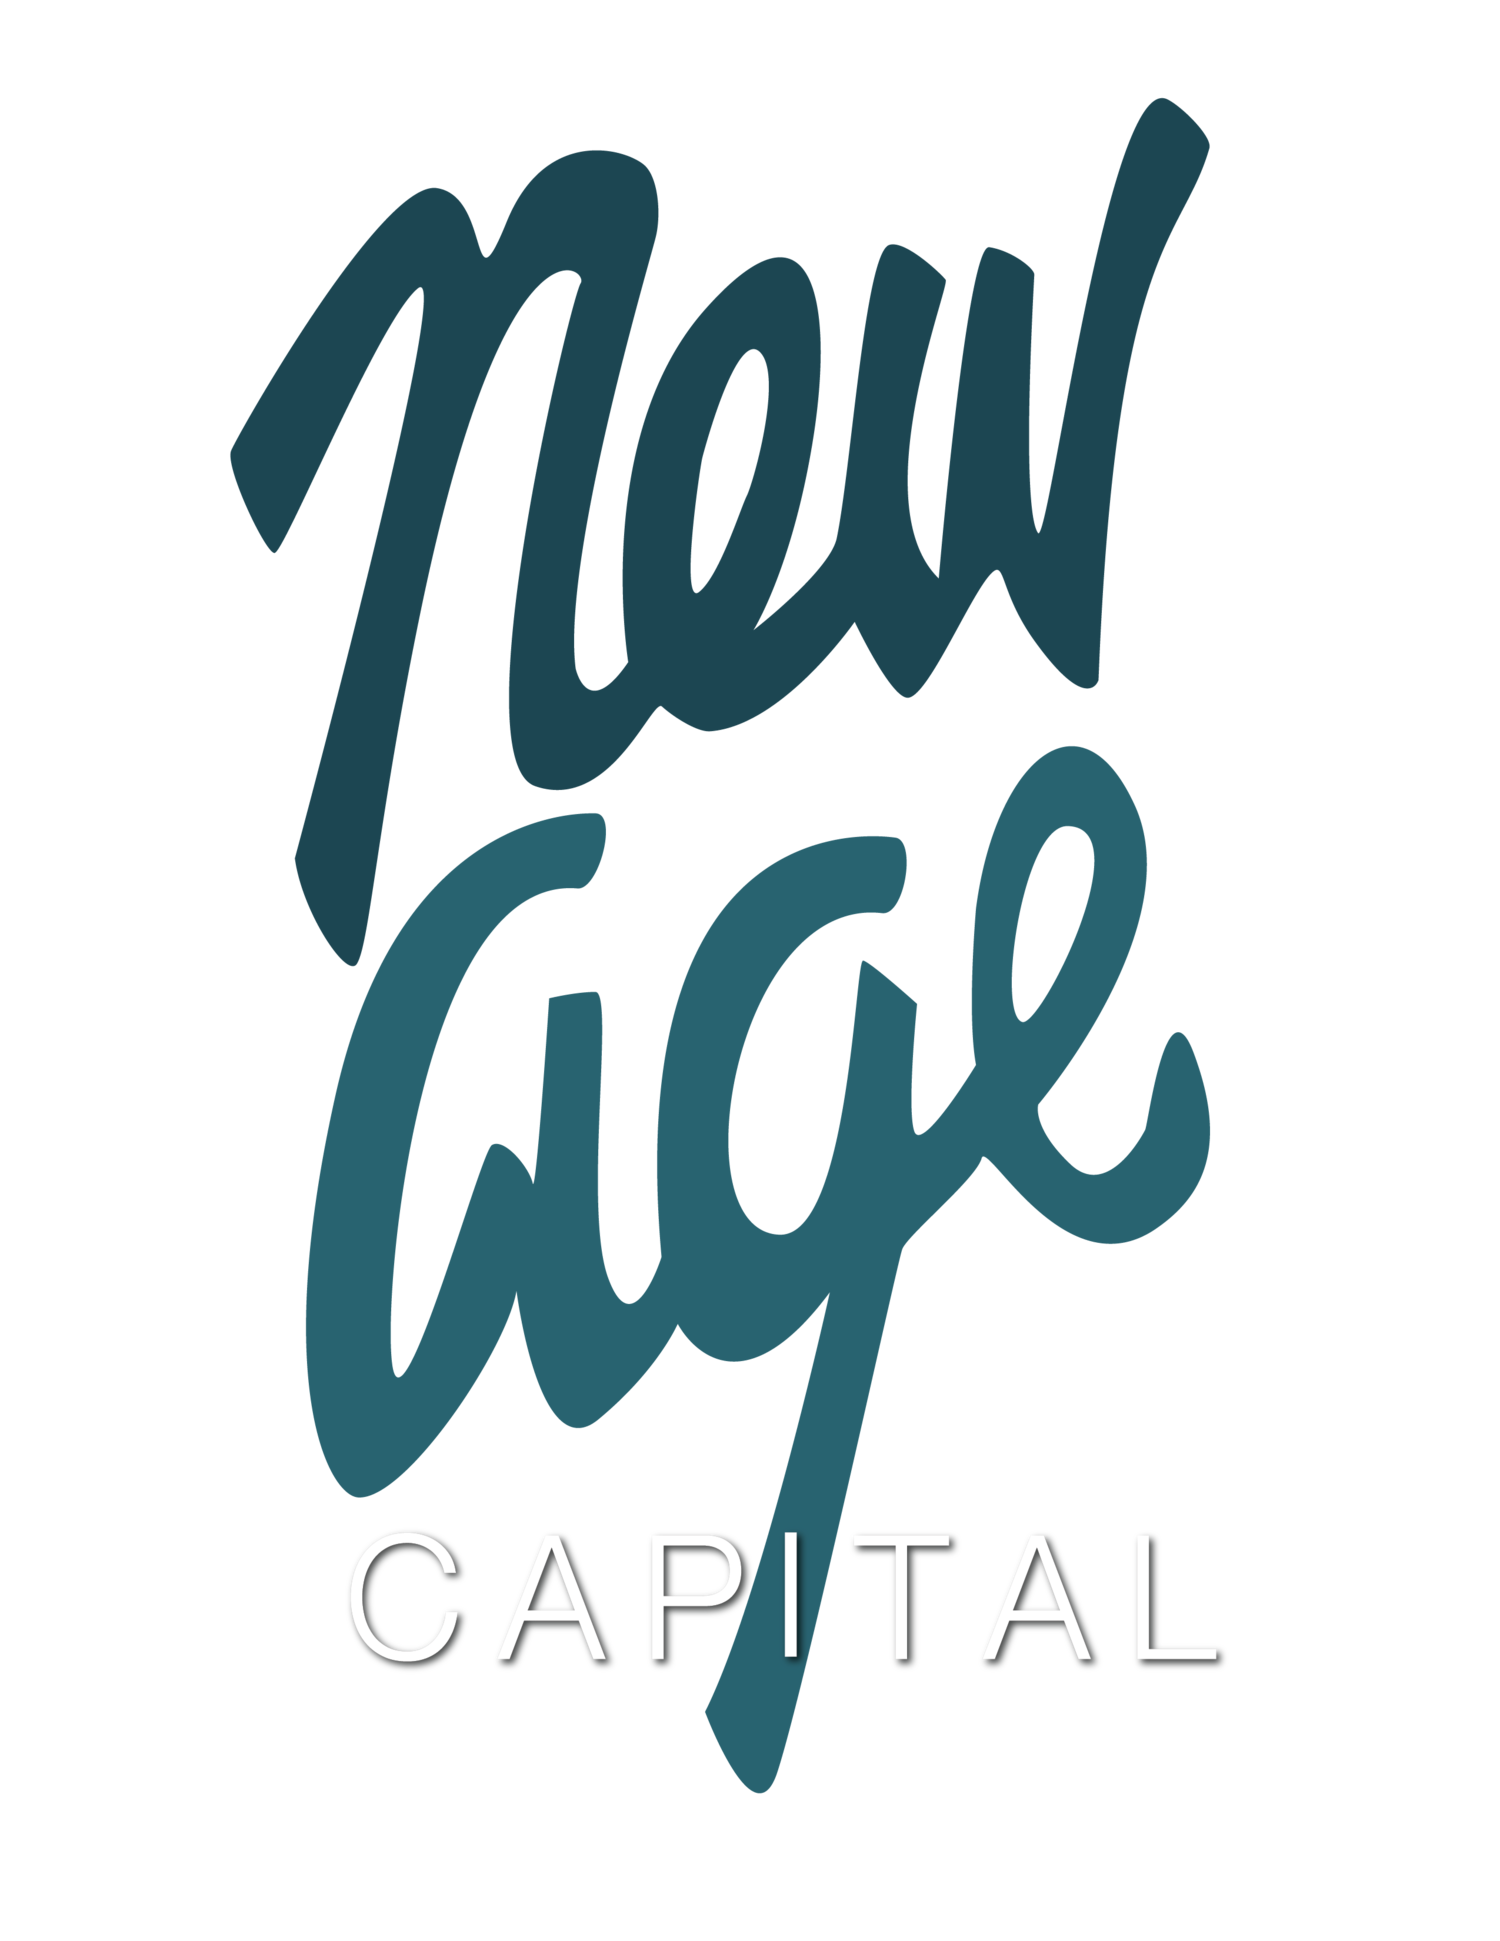 New Age Capital